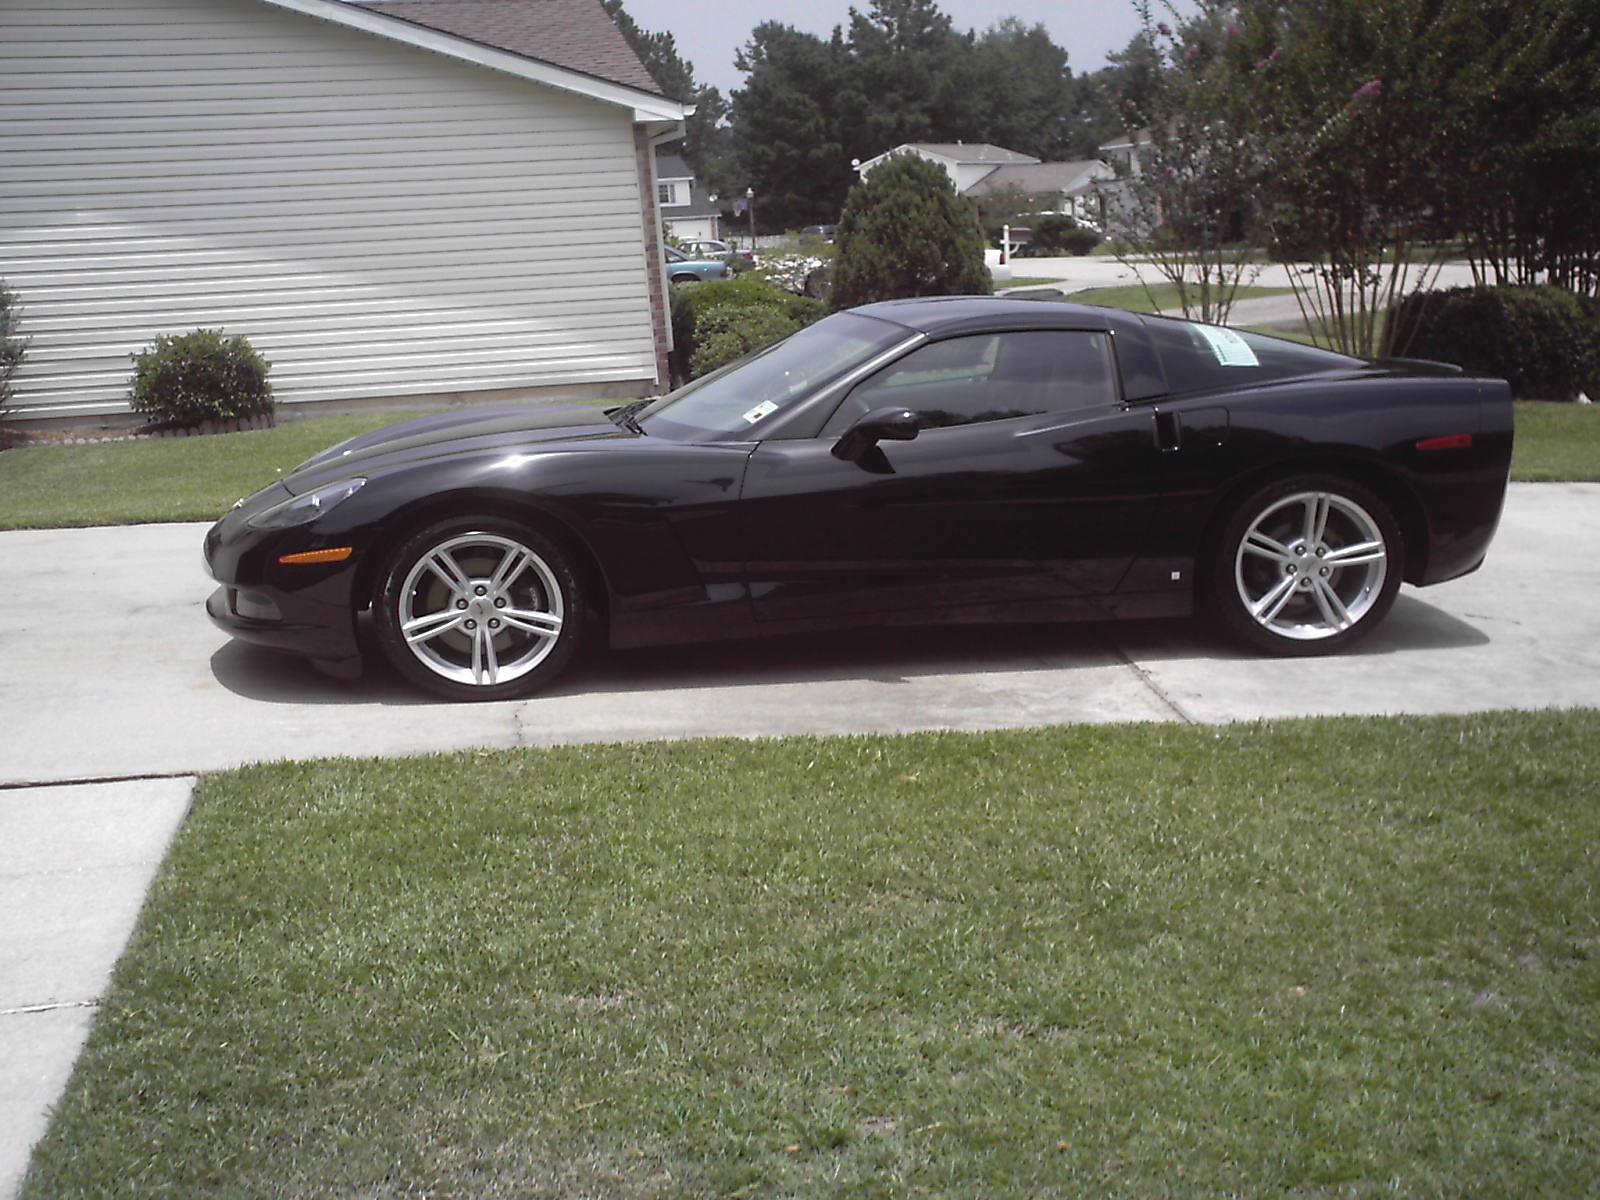 2008 Chevrolet Corvette Coupe, 2008 Chevrolet Corvette Base picture, exterior